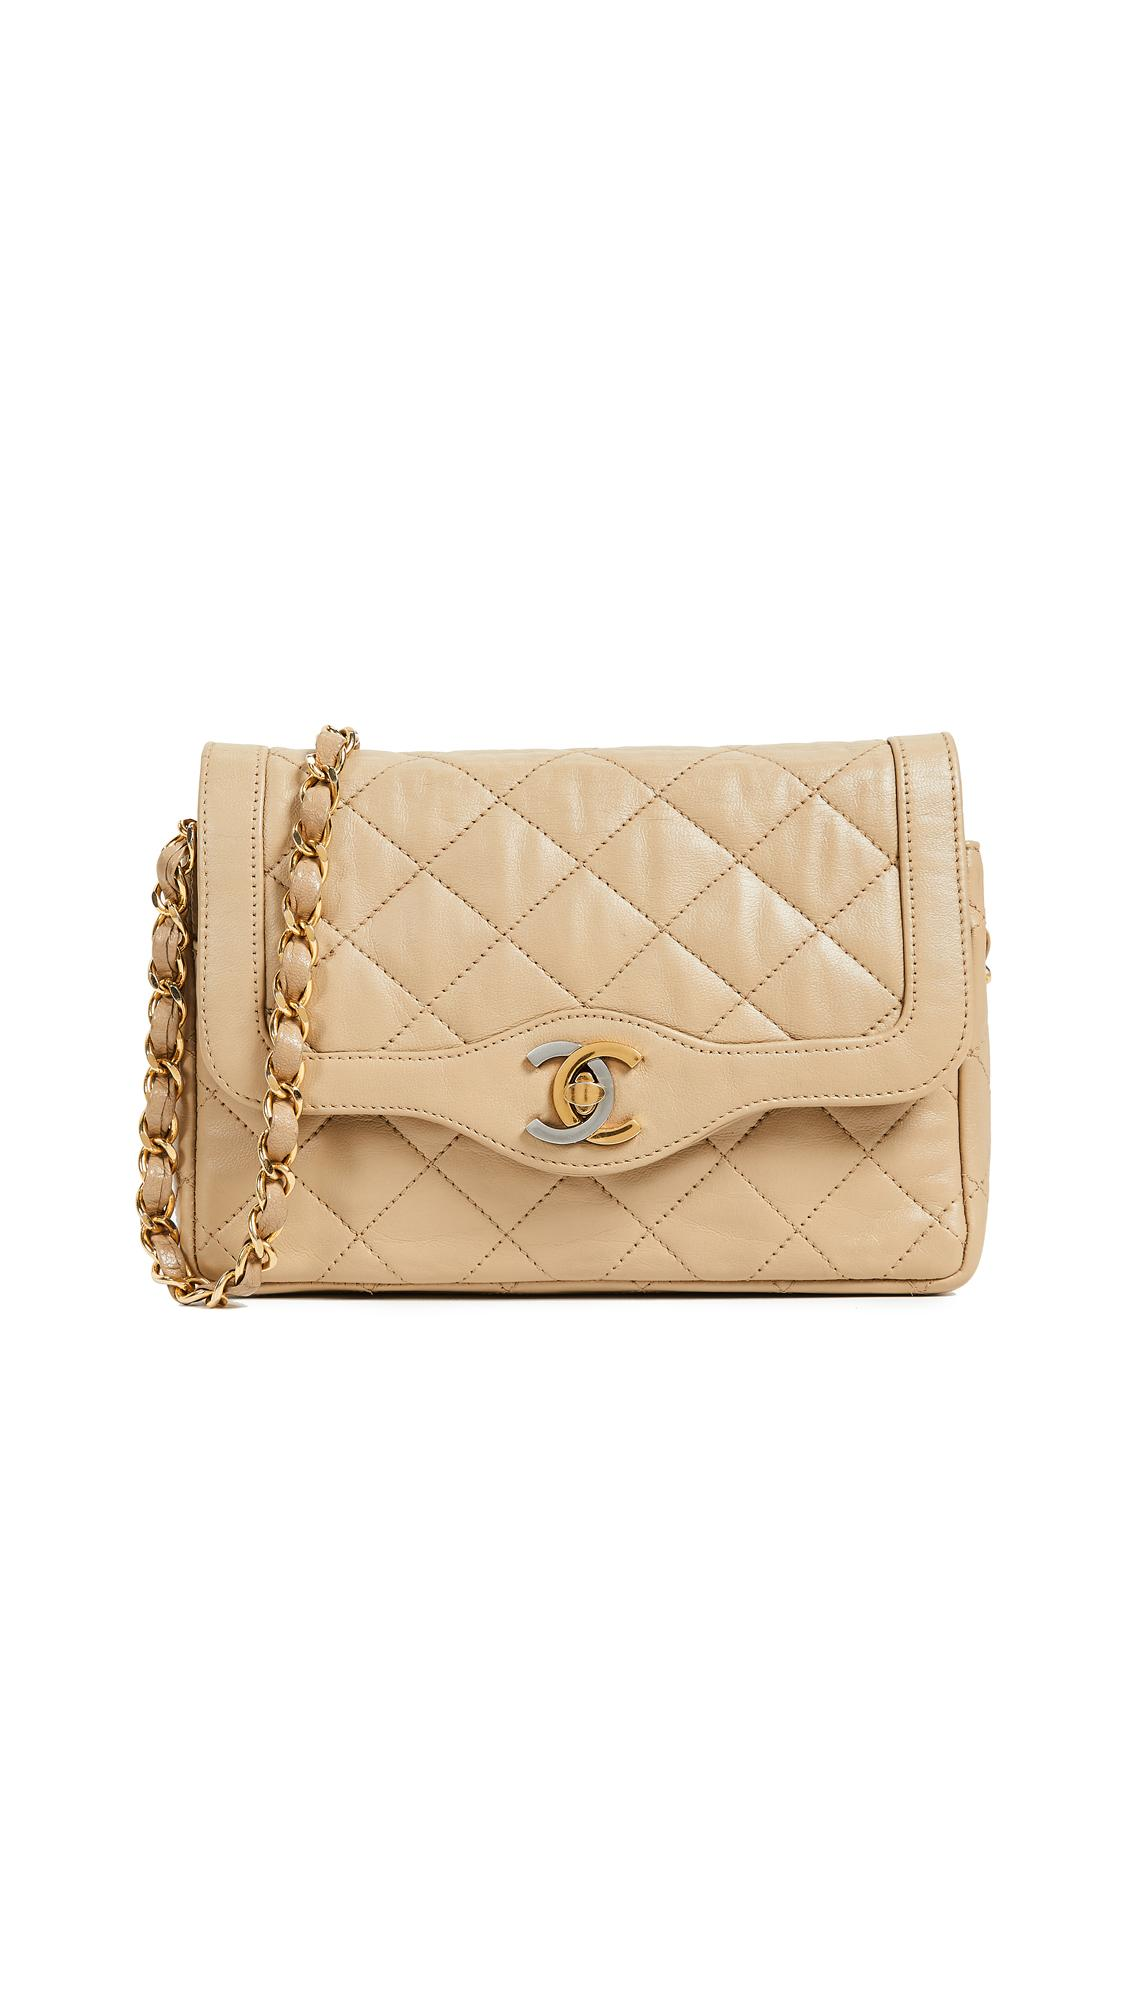 fa1aa82757c6 What Goes Around Comes Around Small Chanel Paris Bag In Beige | ModeSens